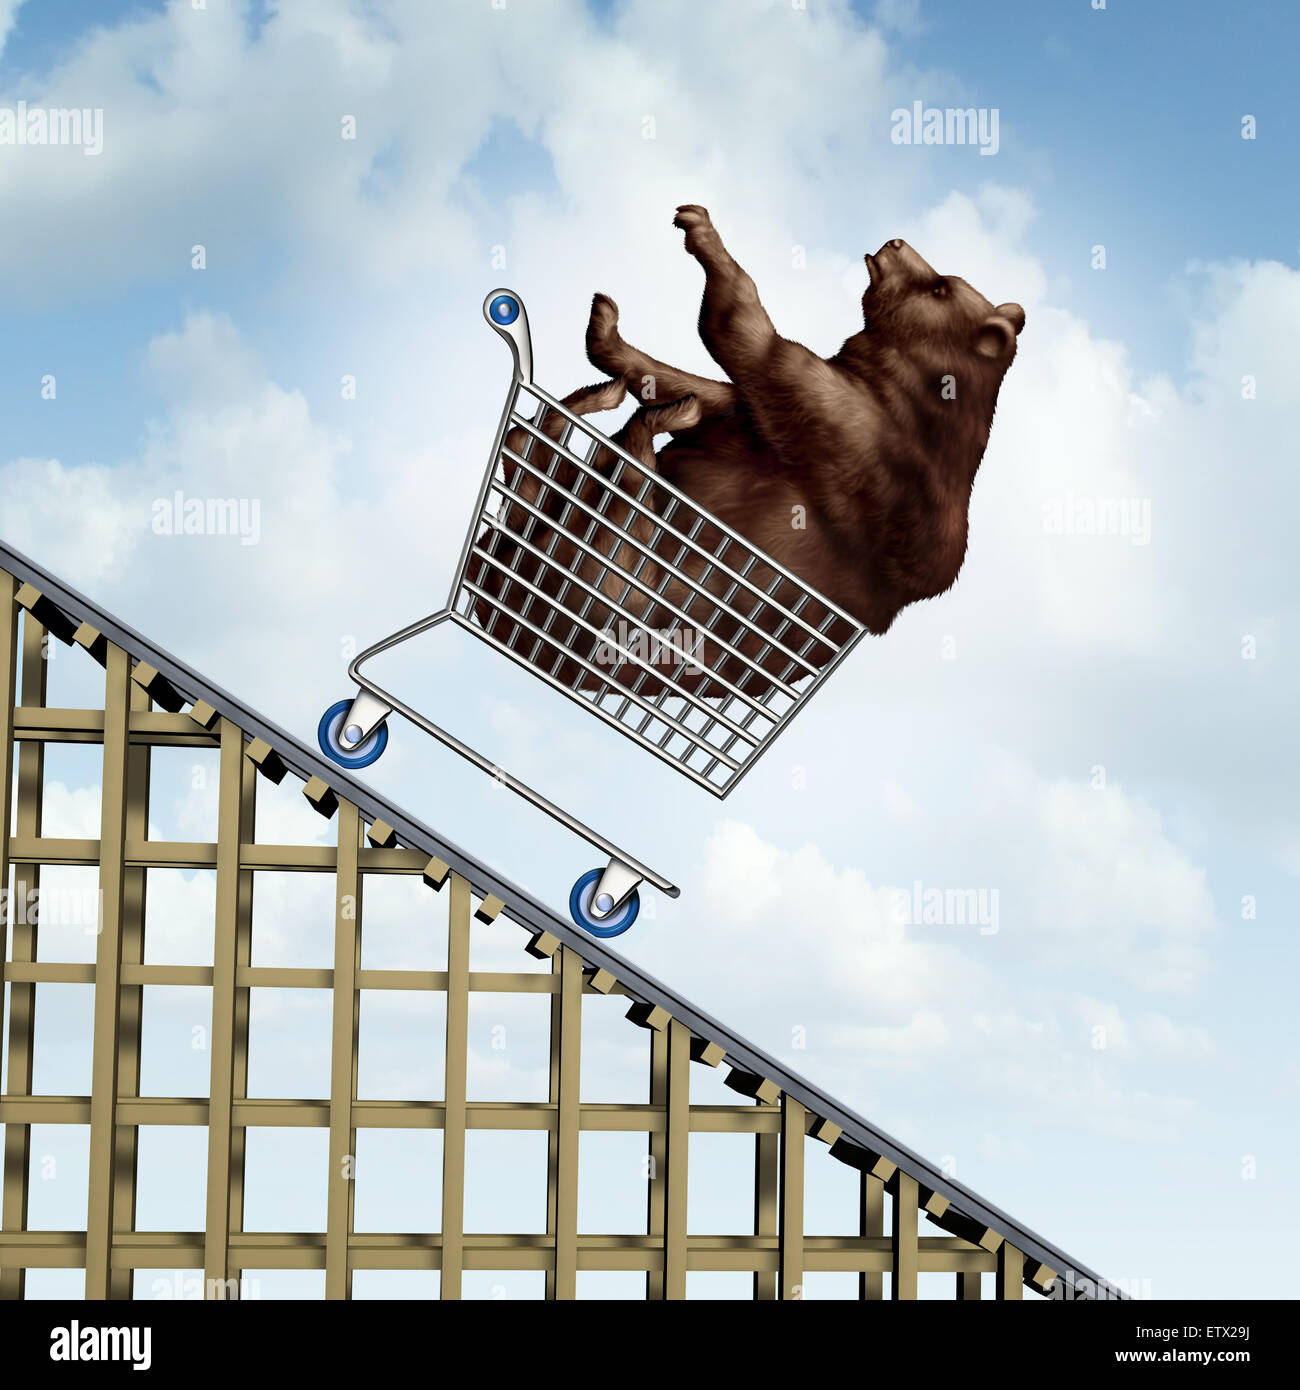 Stock market decline financial crisis concept as a bear in a shopping cart going down on a roller coaster structure Stock Photo